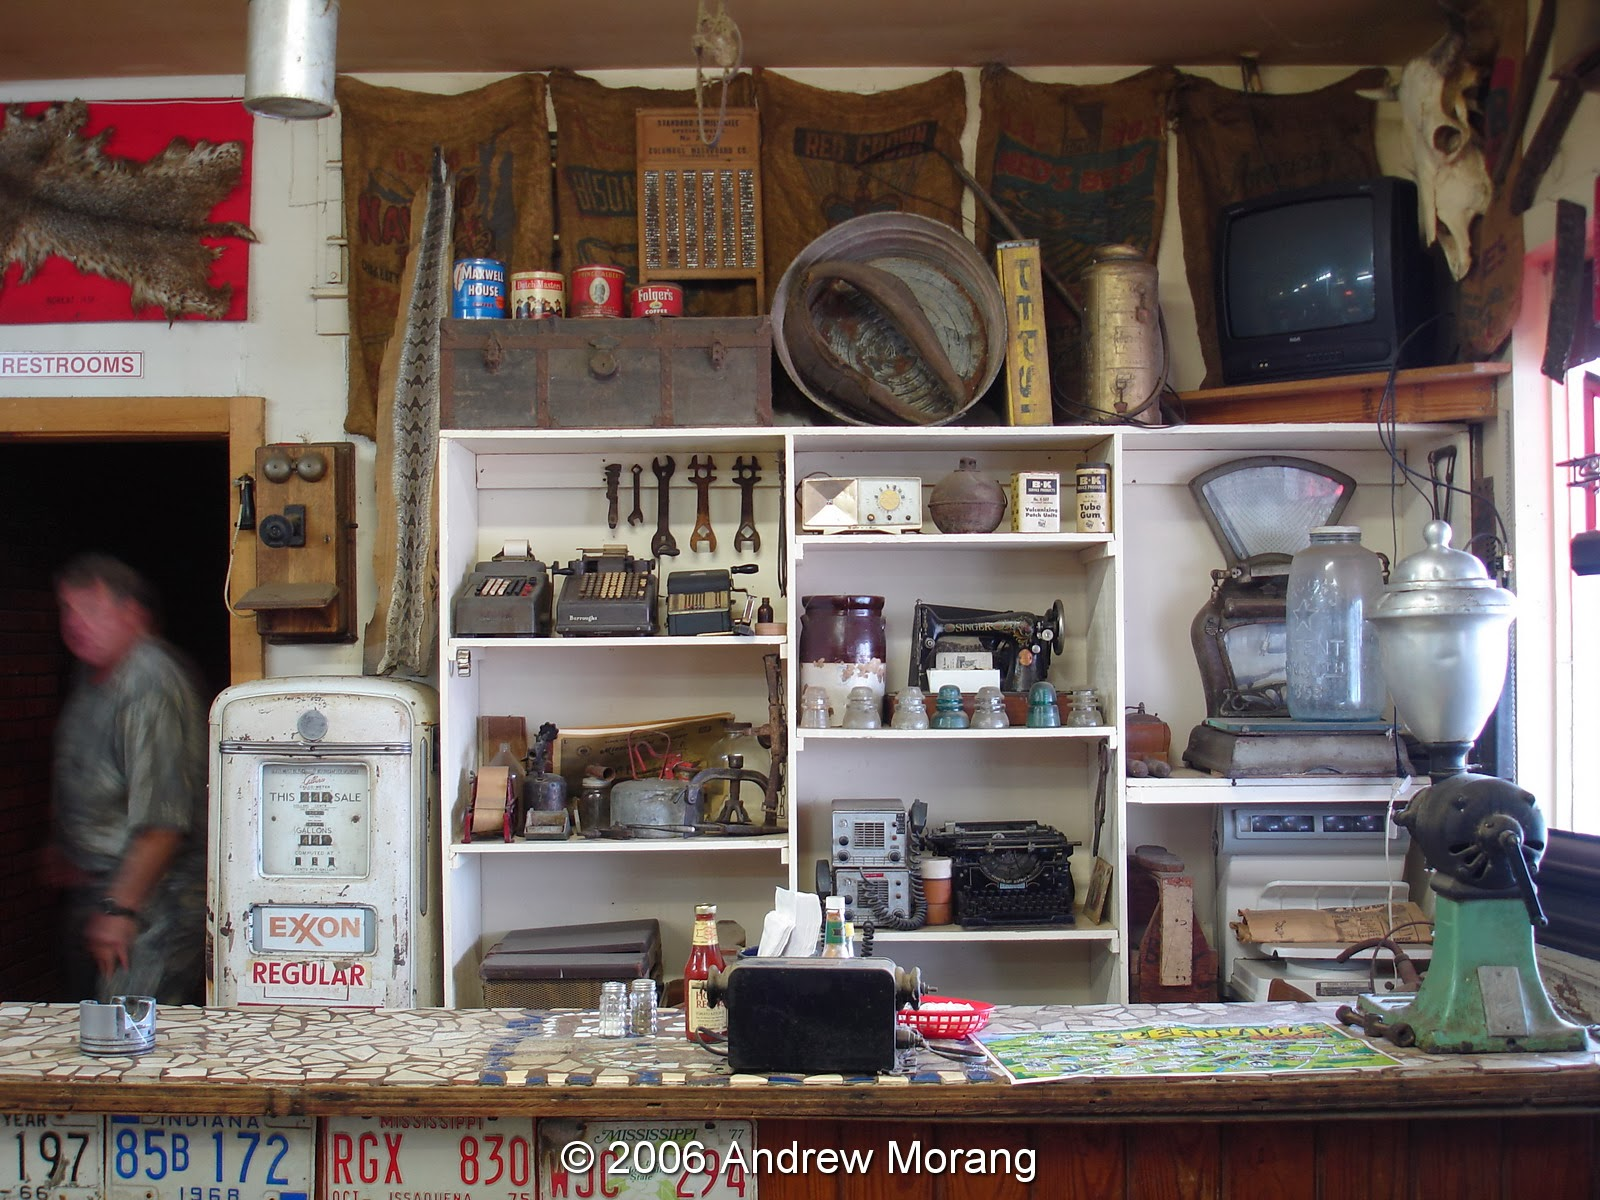 Mississippi washington county chatham - The Inside Is Full Of Useful Stuff For Fishermen Along With And Bits And Pieces From The Old Days Stop For A Coffee Or Snack